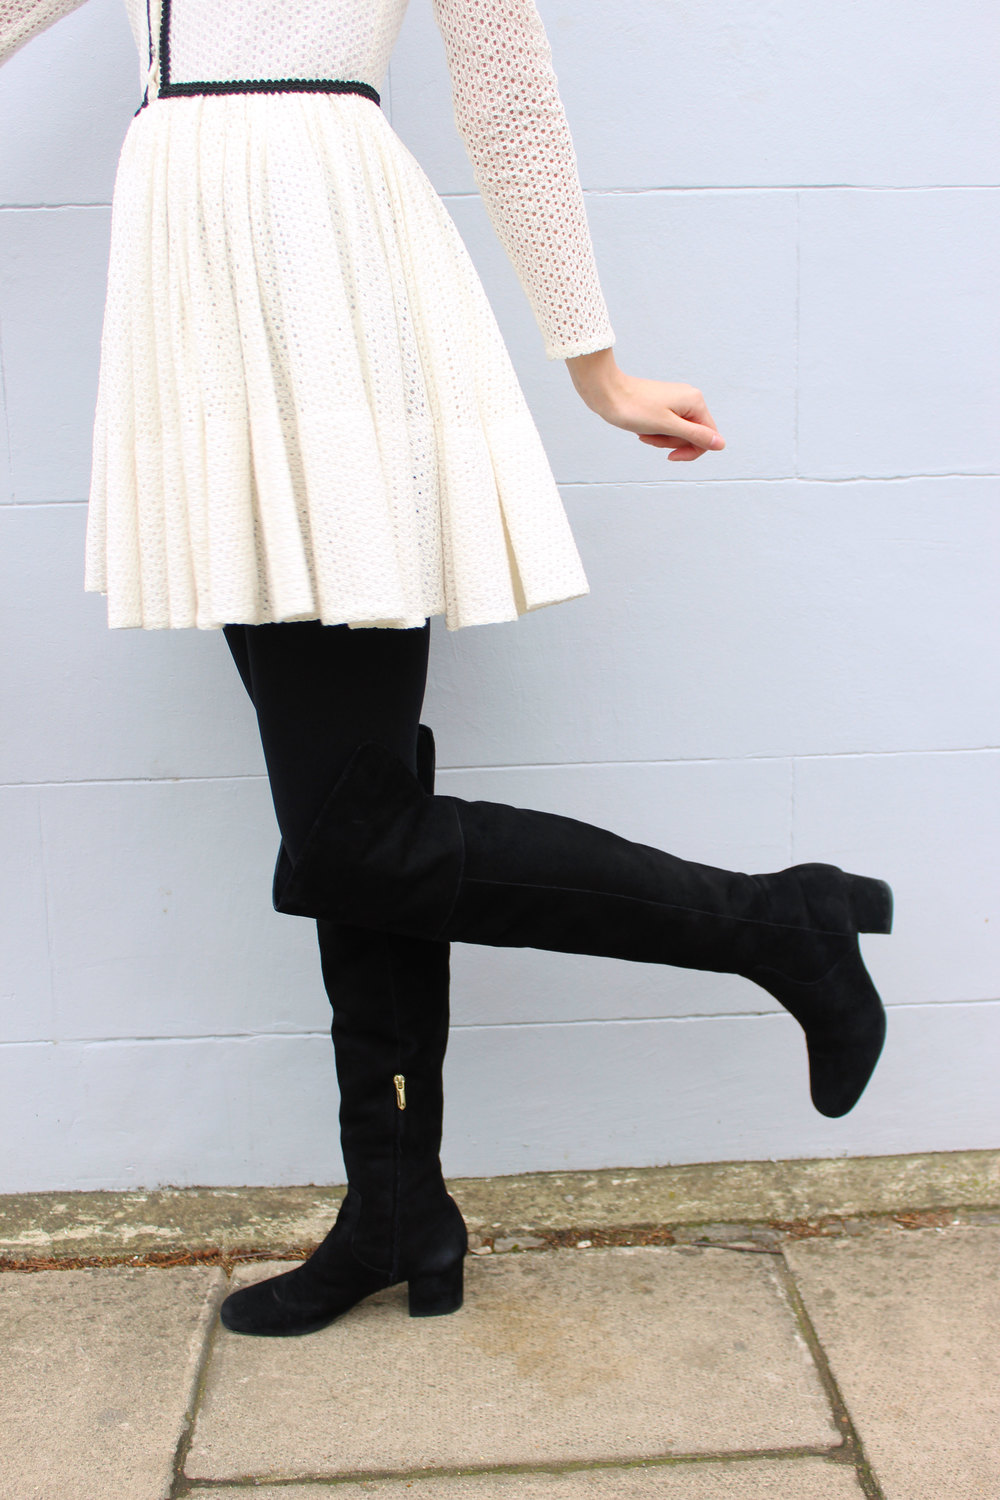 Suede over the knee boots and a Maje dress.